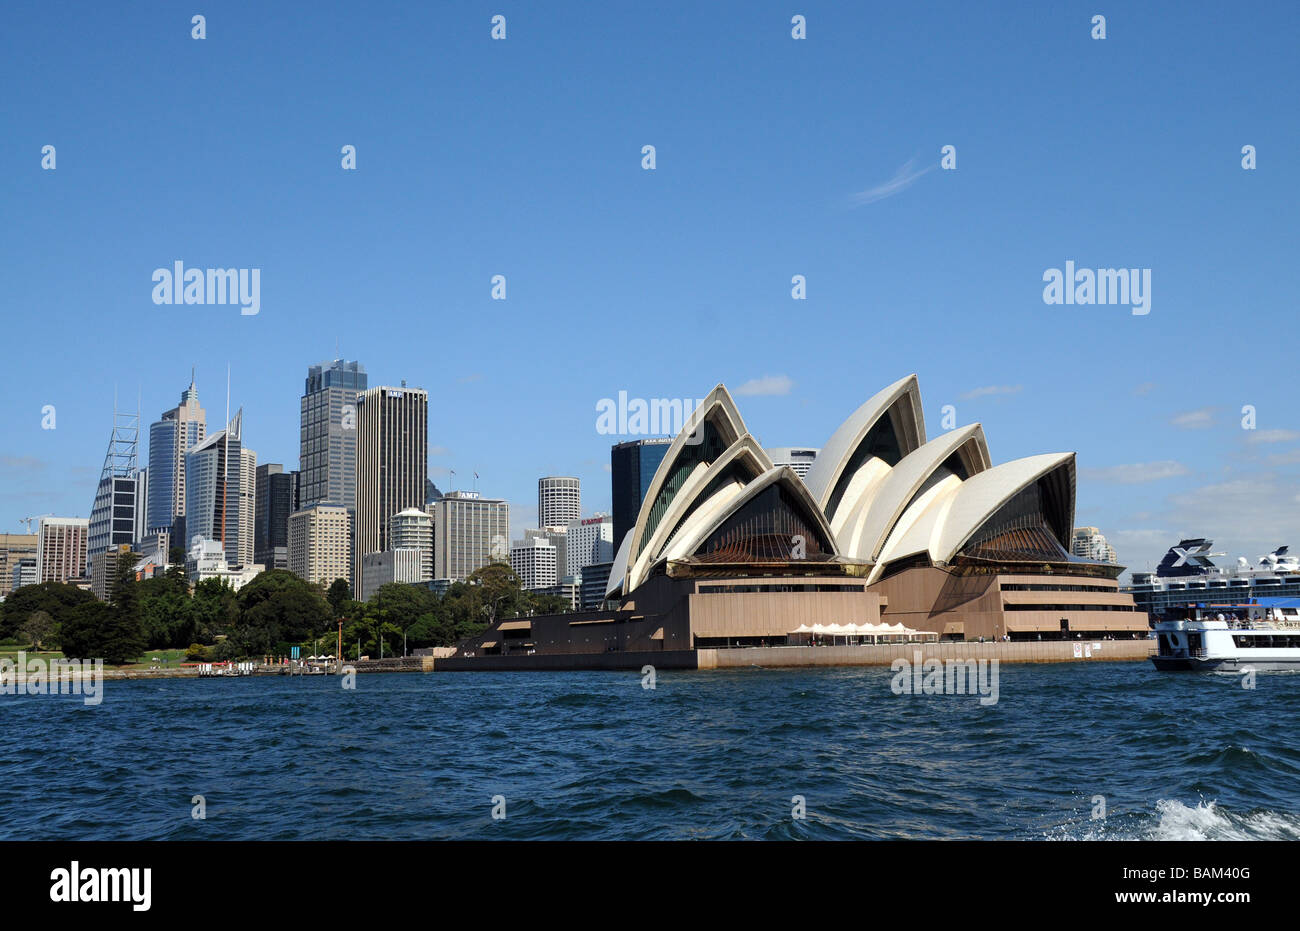 Sydney,AustraliaView ofCity with Opera House built in 2003, designed by Jorn Utzon, one of the word's most distinctive - Stock Image